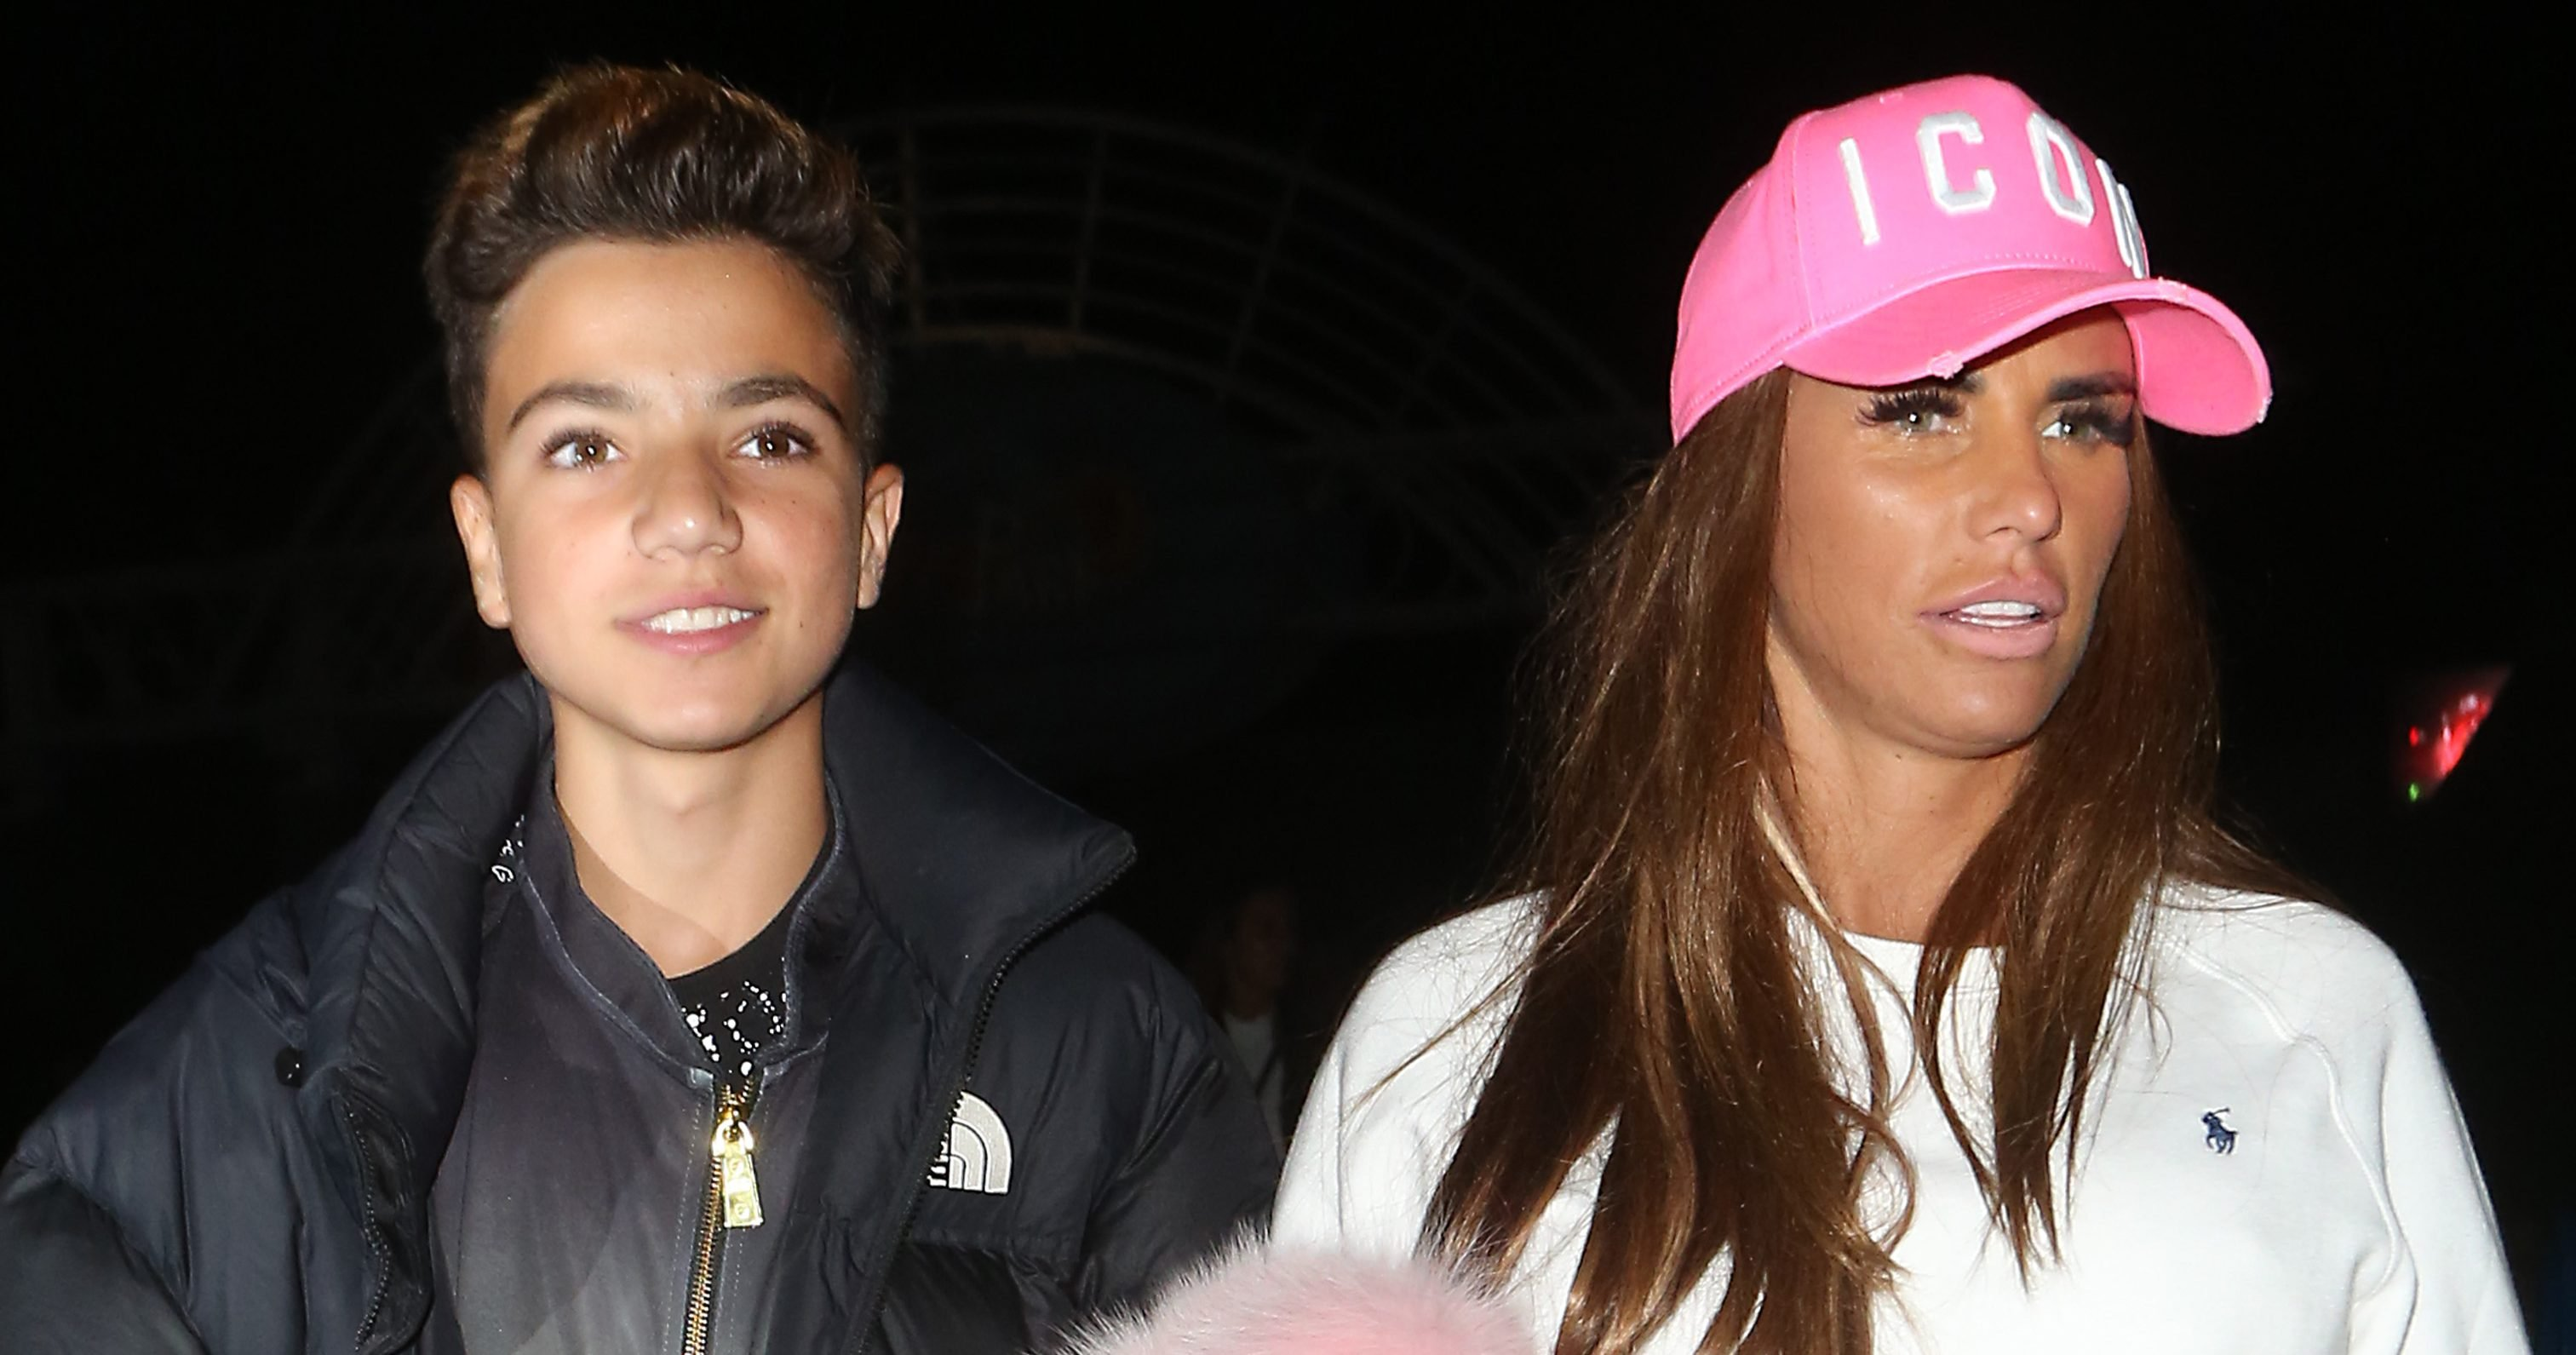 Katie Price hasn't seen son Junior for four weeks because she's been 'so busy with work and holidays'